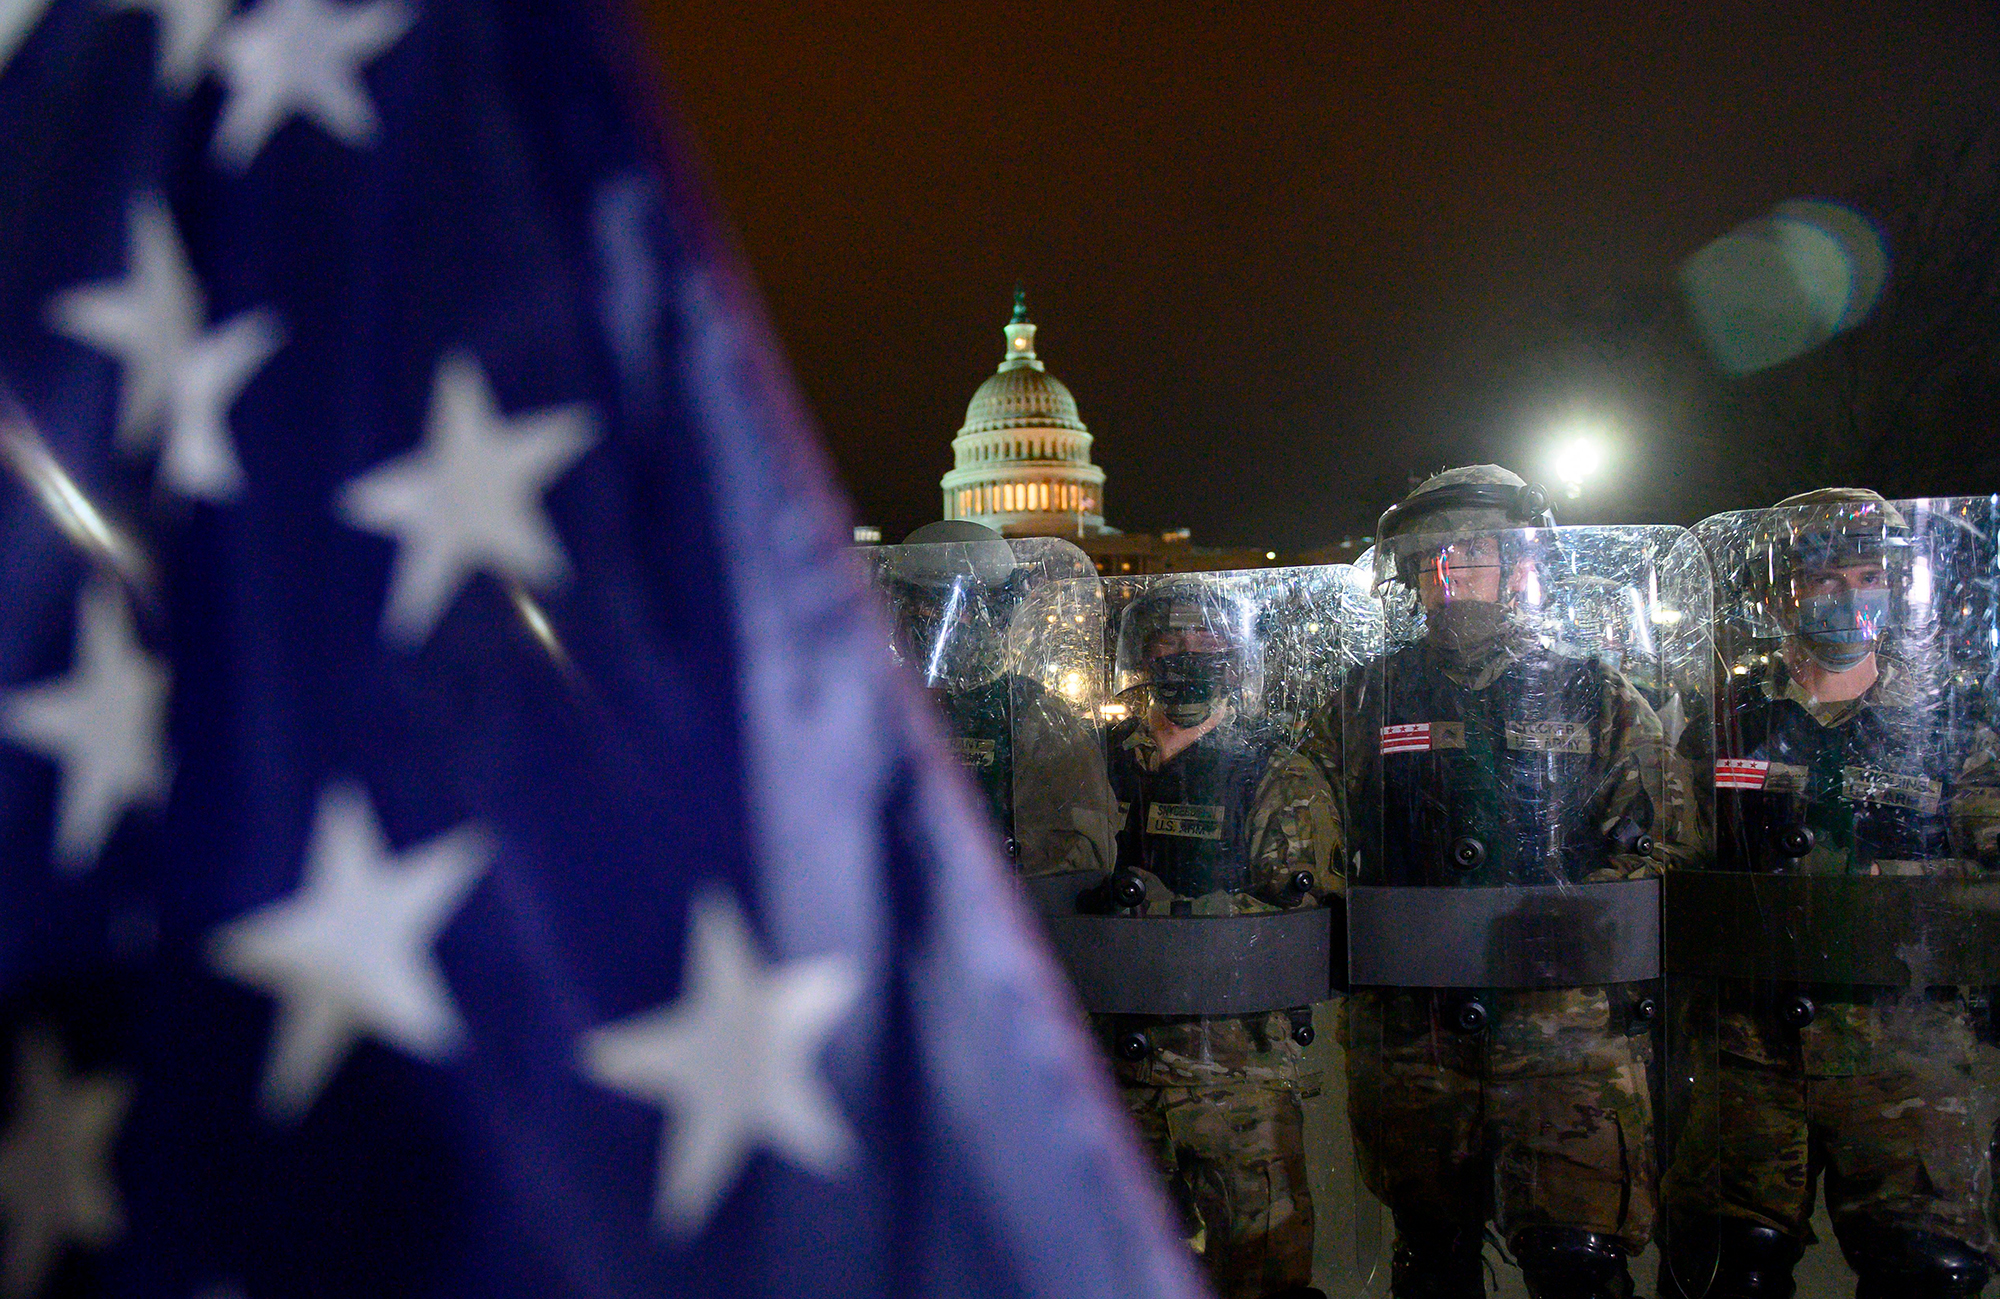 Key takeaways from Wednesday's developments in the Capitol riots investigation